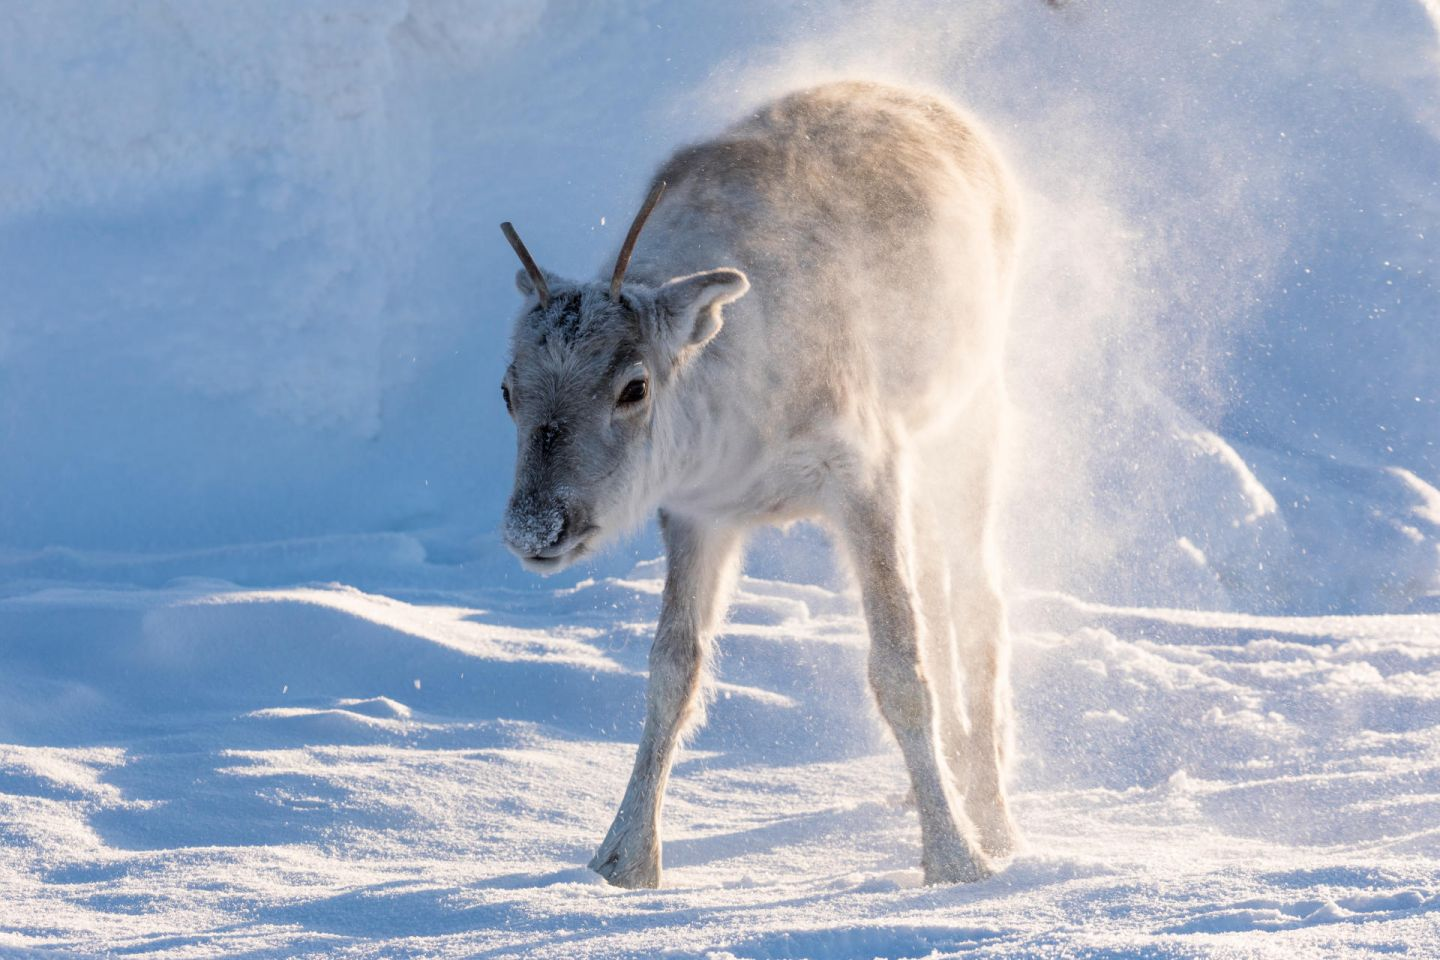 Young reindeer in winter in Lapland, from the filming of Ailo's Journey